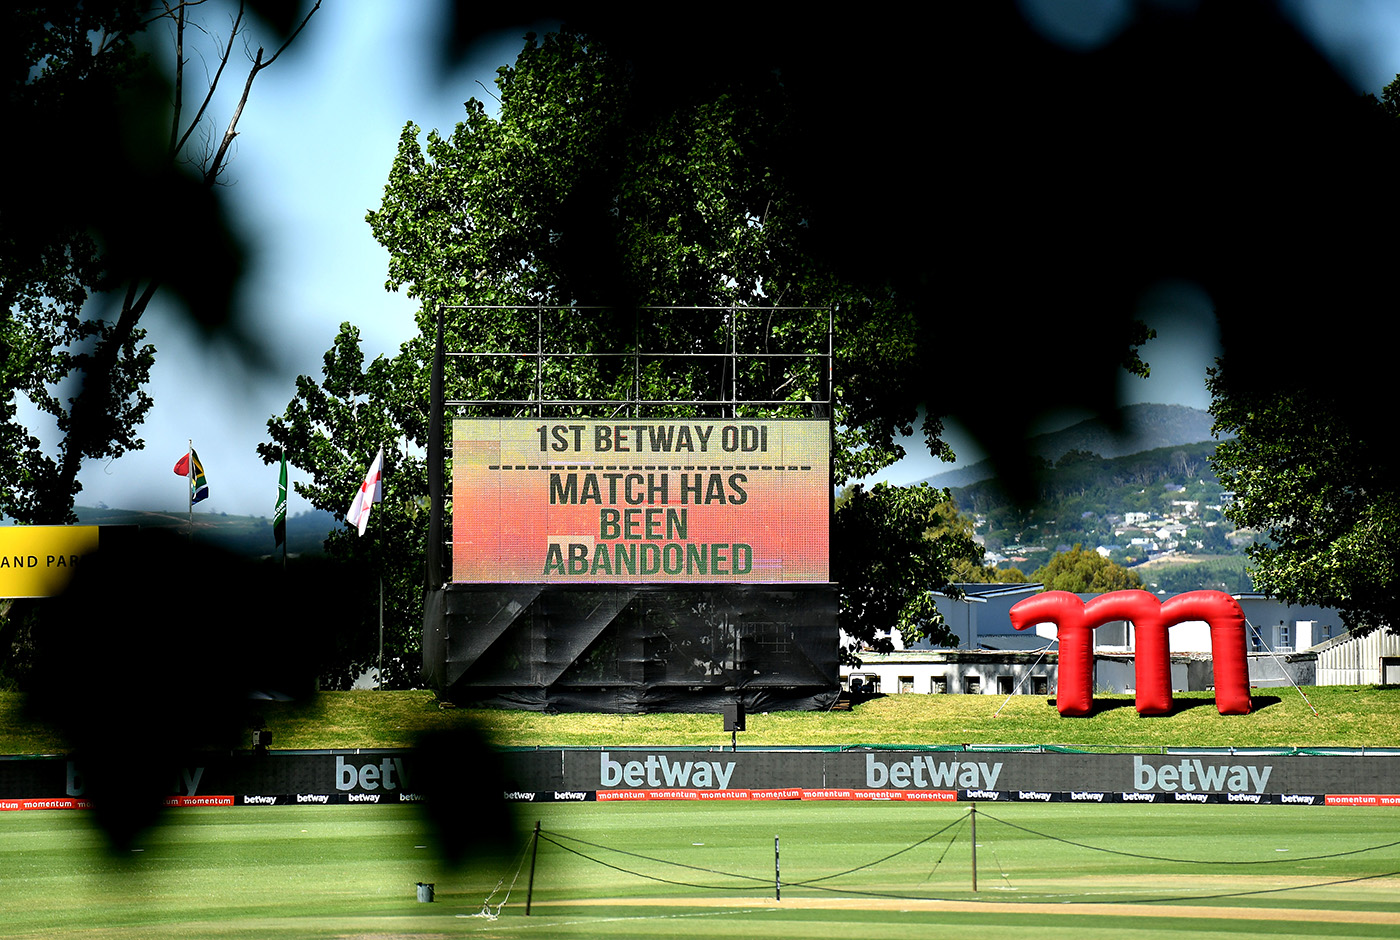 The South Africa-England tour was called off in December following an outbreak of Covid-19 among both teams